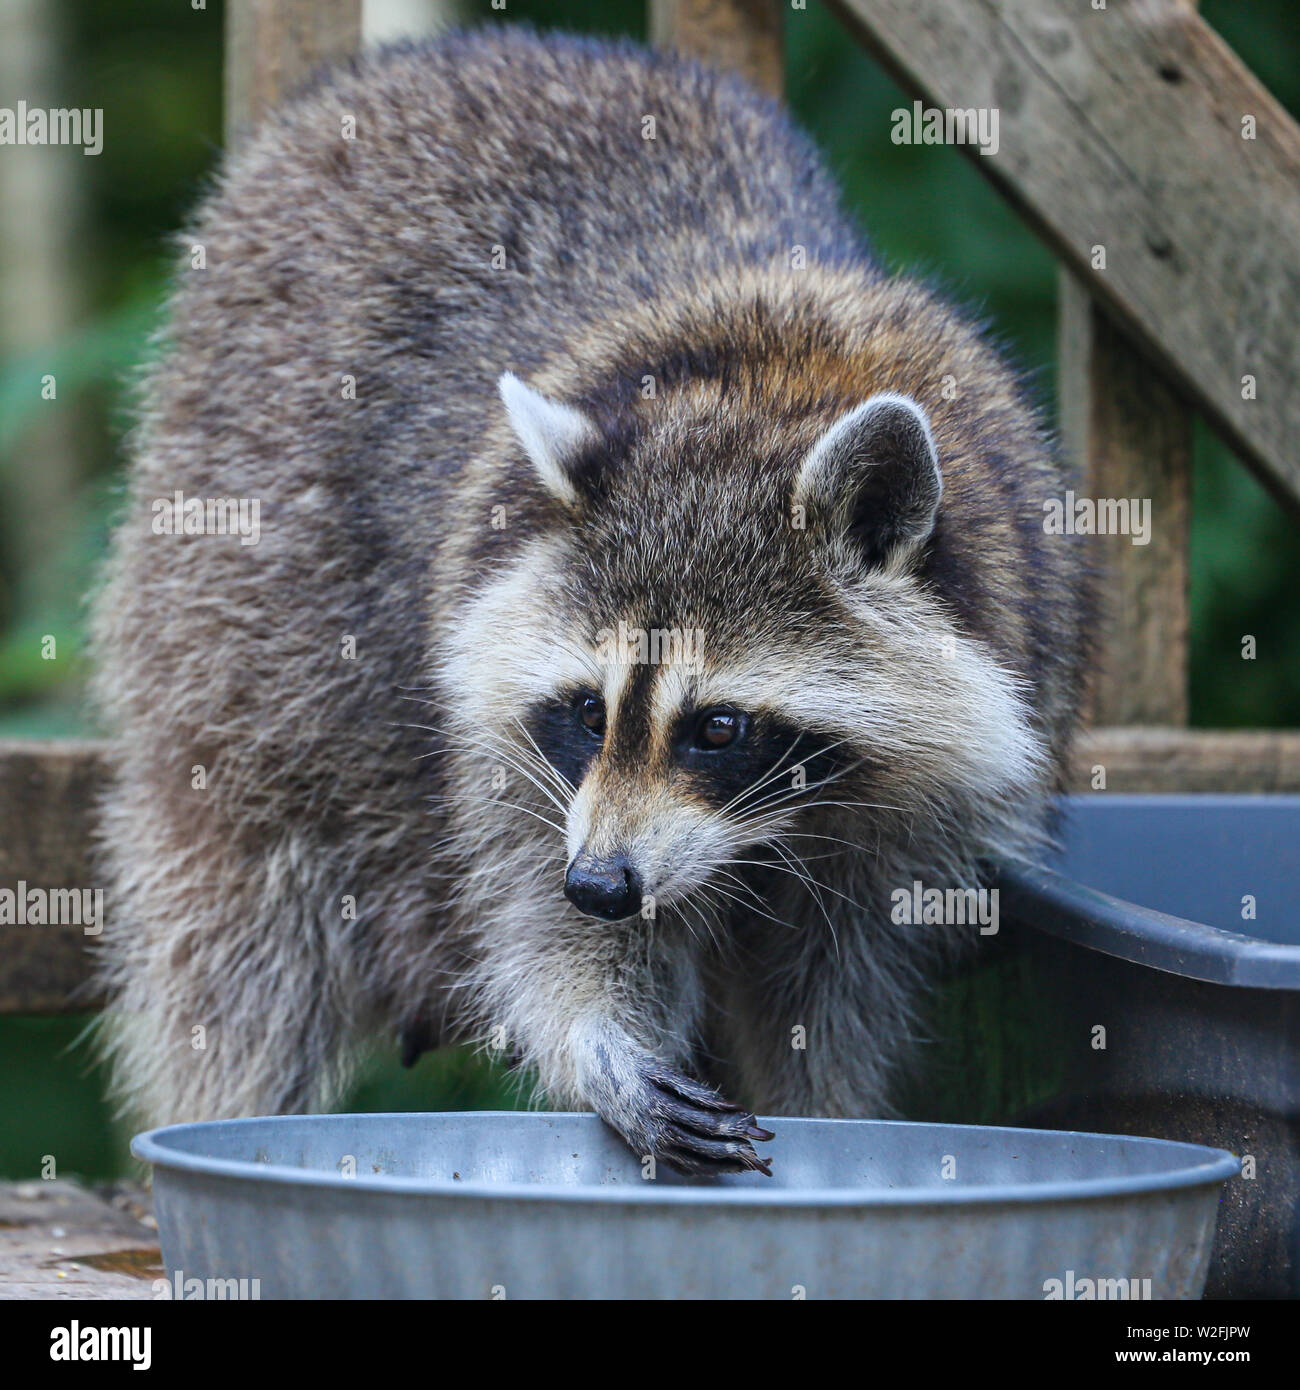 Closeup of a female raccoon scooping up food from a metal food bowl, on a wooden deck against dark green foliage. - Stock Image